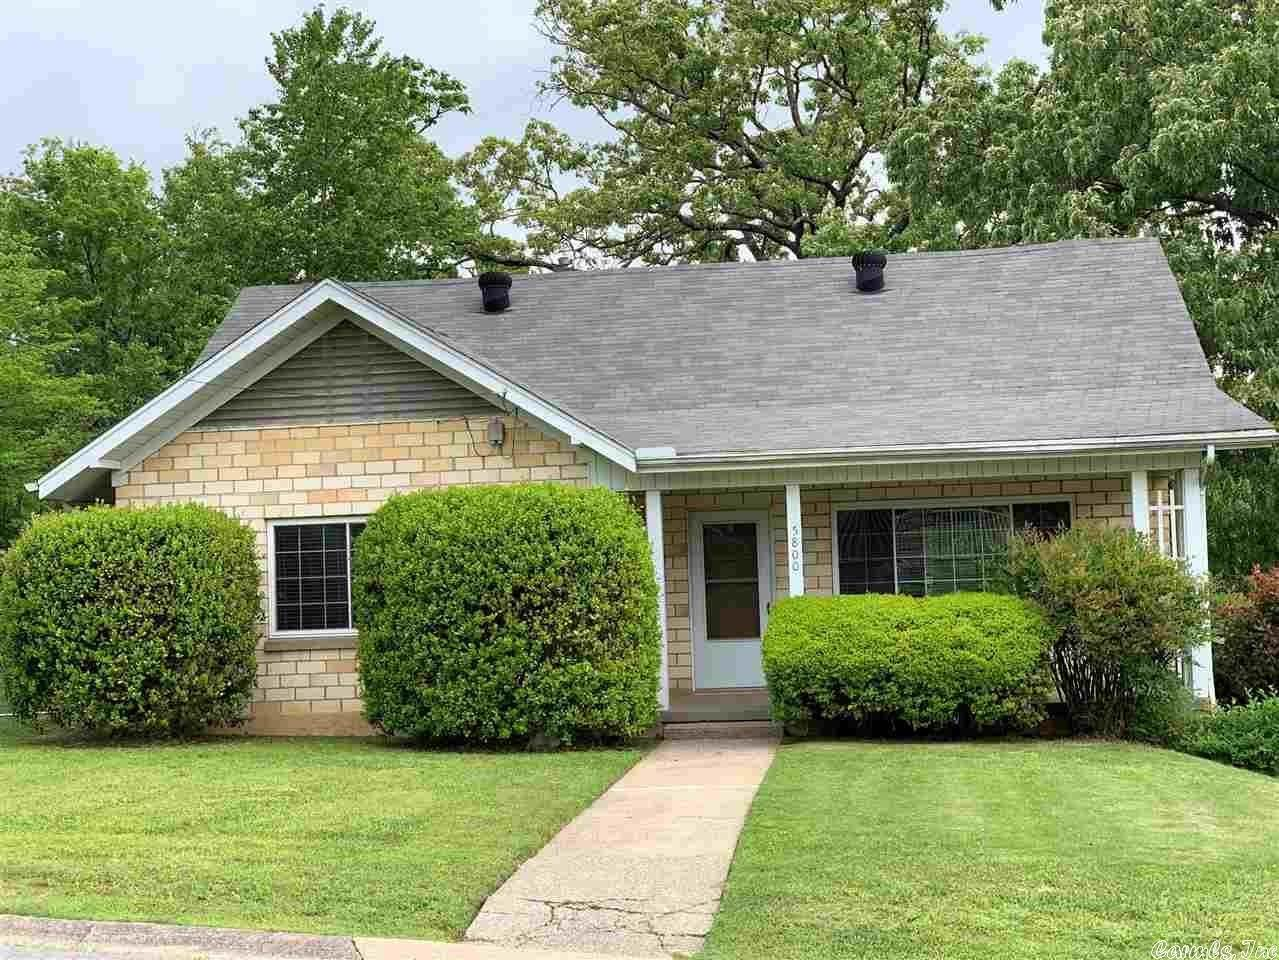 Multi-Family Homes for Sale at 5800 W B Street Little Rock, Arkansas 72205 United States